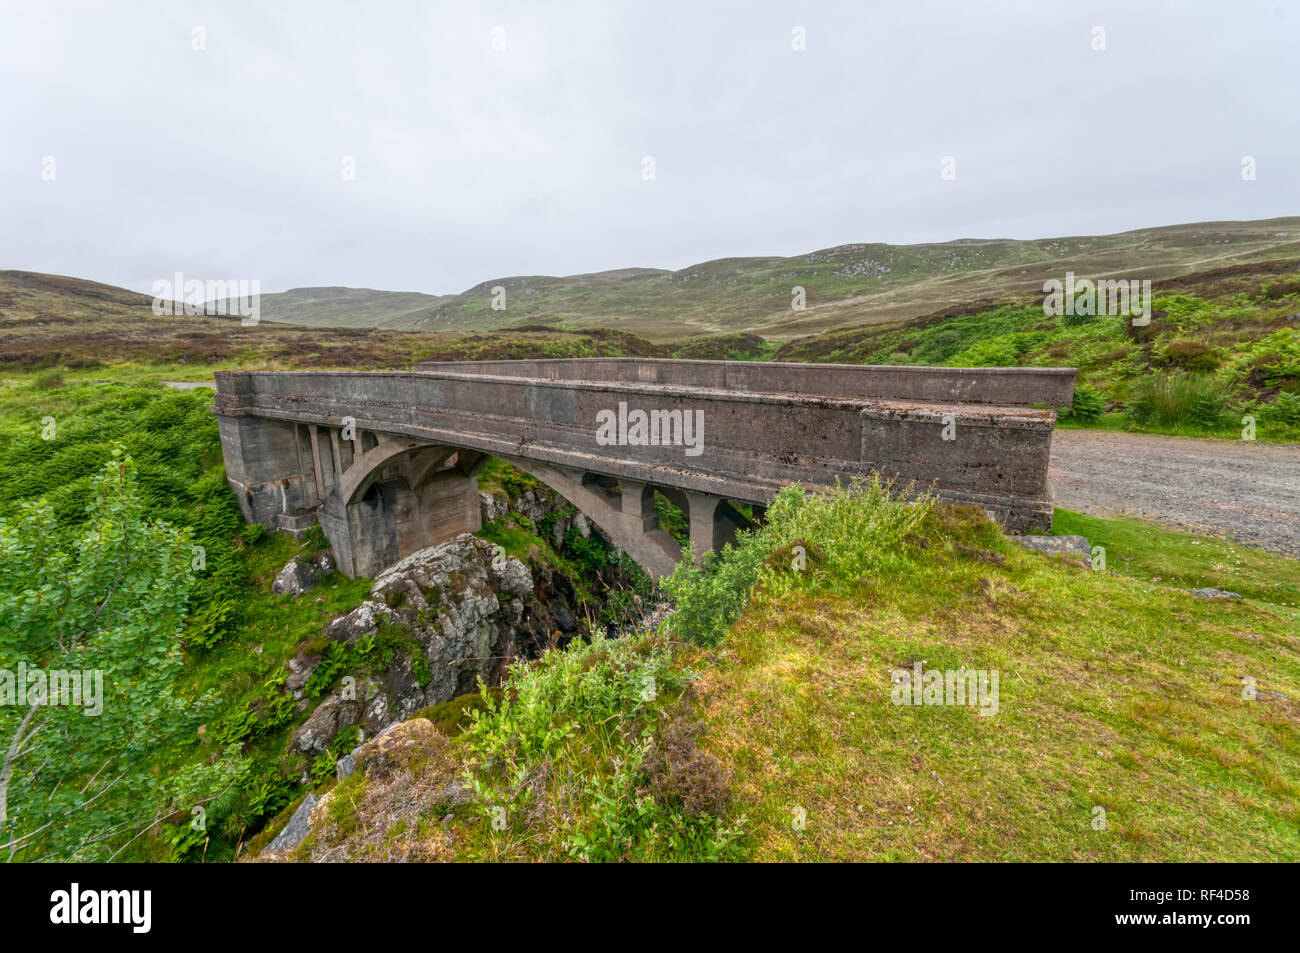 The Bridge to Nowhere at Tolsta on the Isle of Lewis features in the novel The Chessmen by Peter May - Stock Image